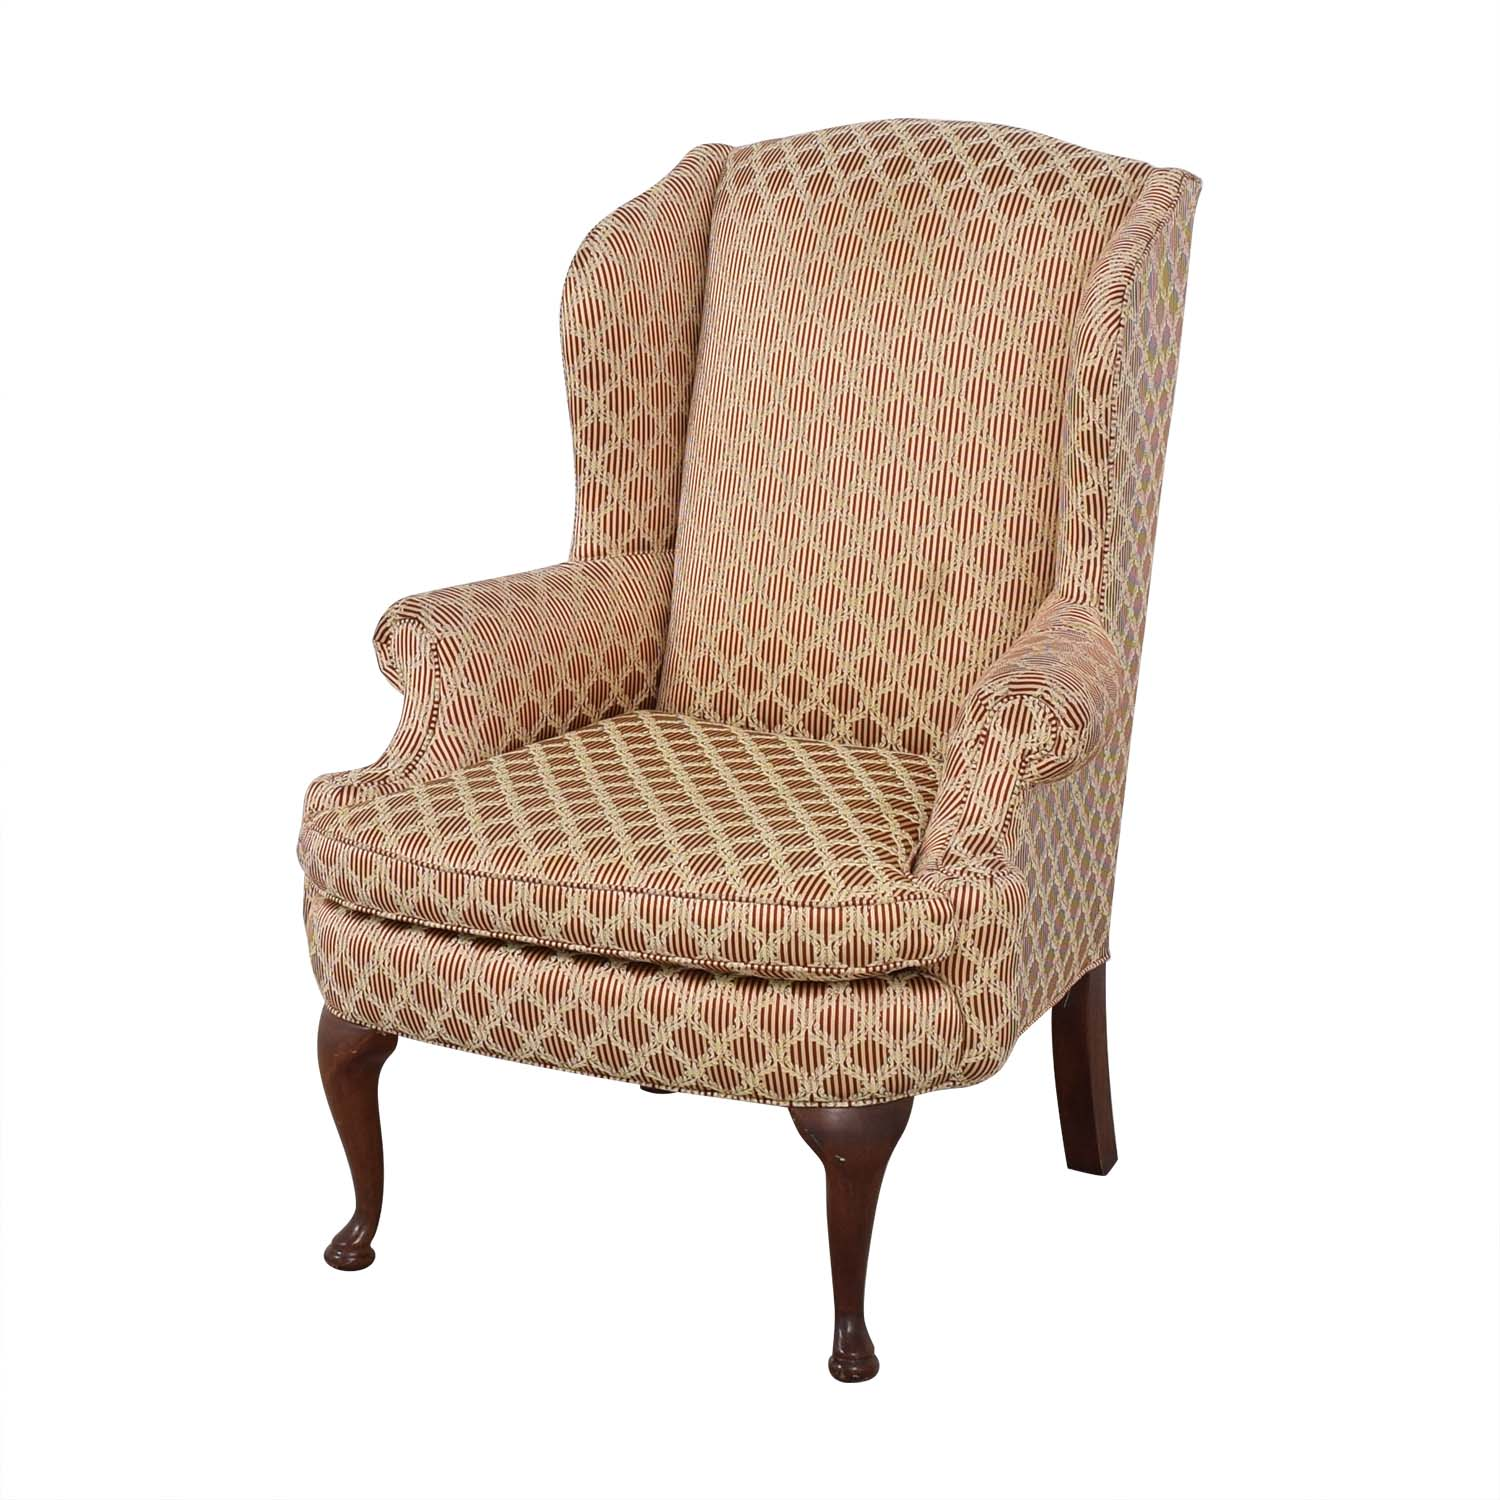 buy Plunkett Furniture Plunkett Upholstered Wingback Chair online